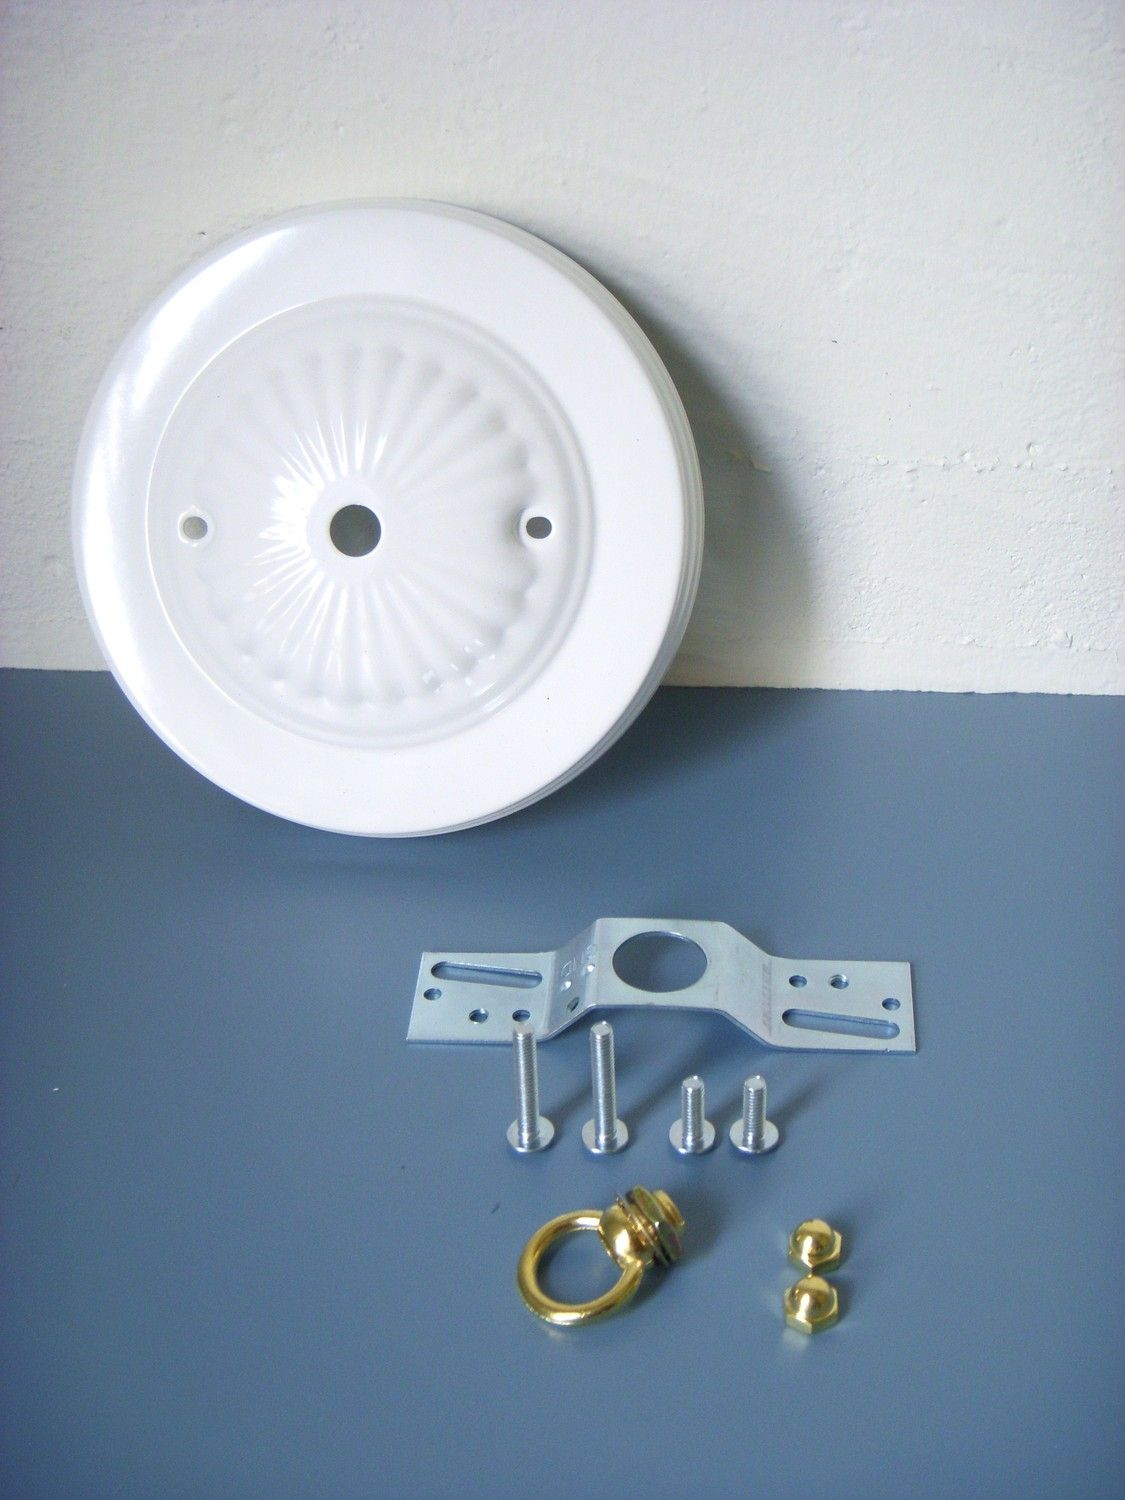 Ceiling Light Fixture Mounting Plate http